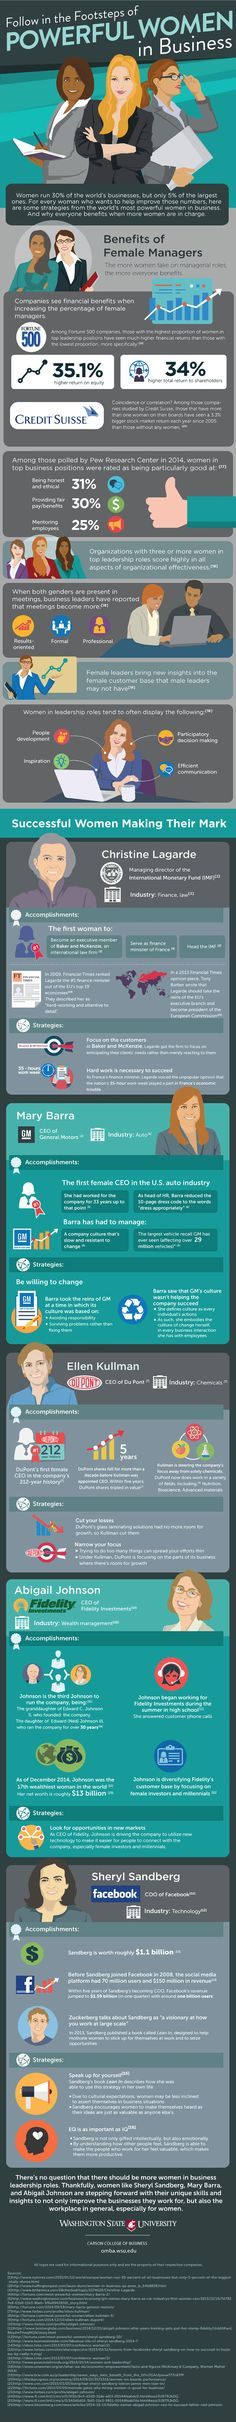 Follow in the Footsteps of Powerful Women in Business #infographic #Business #Women